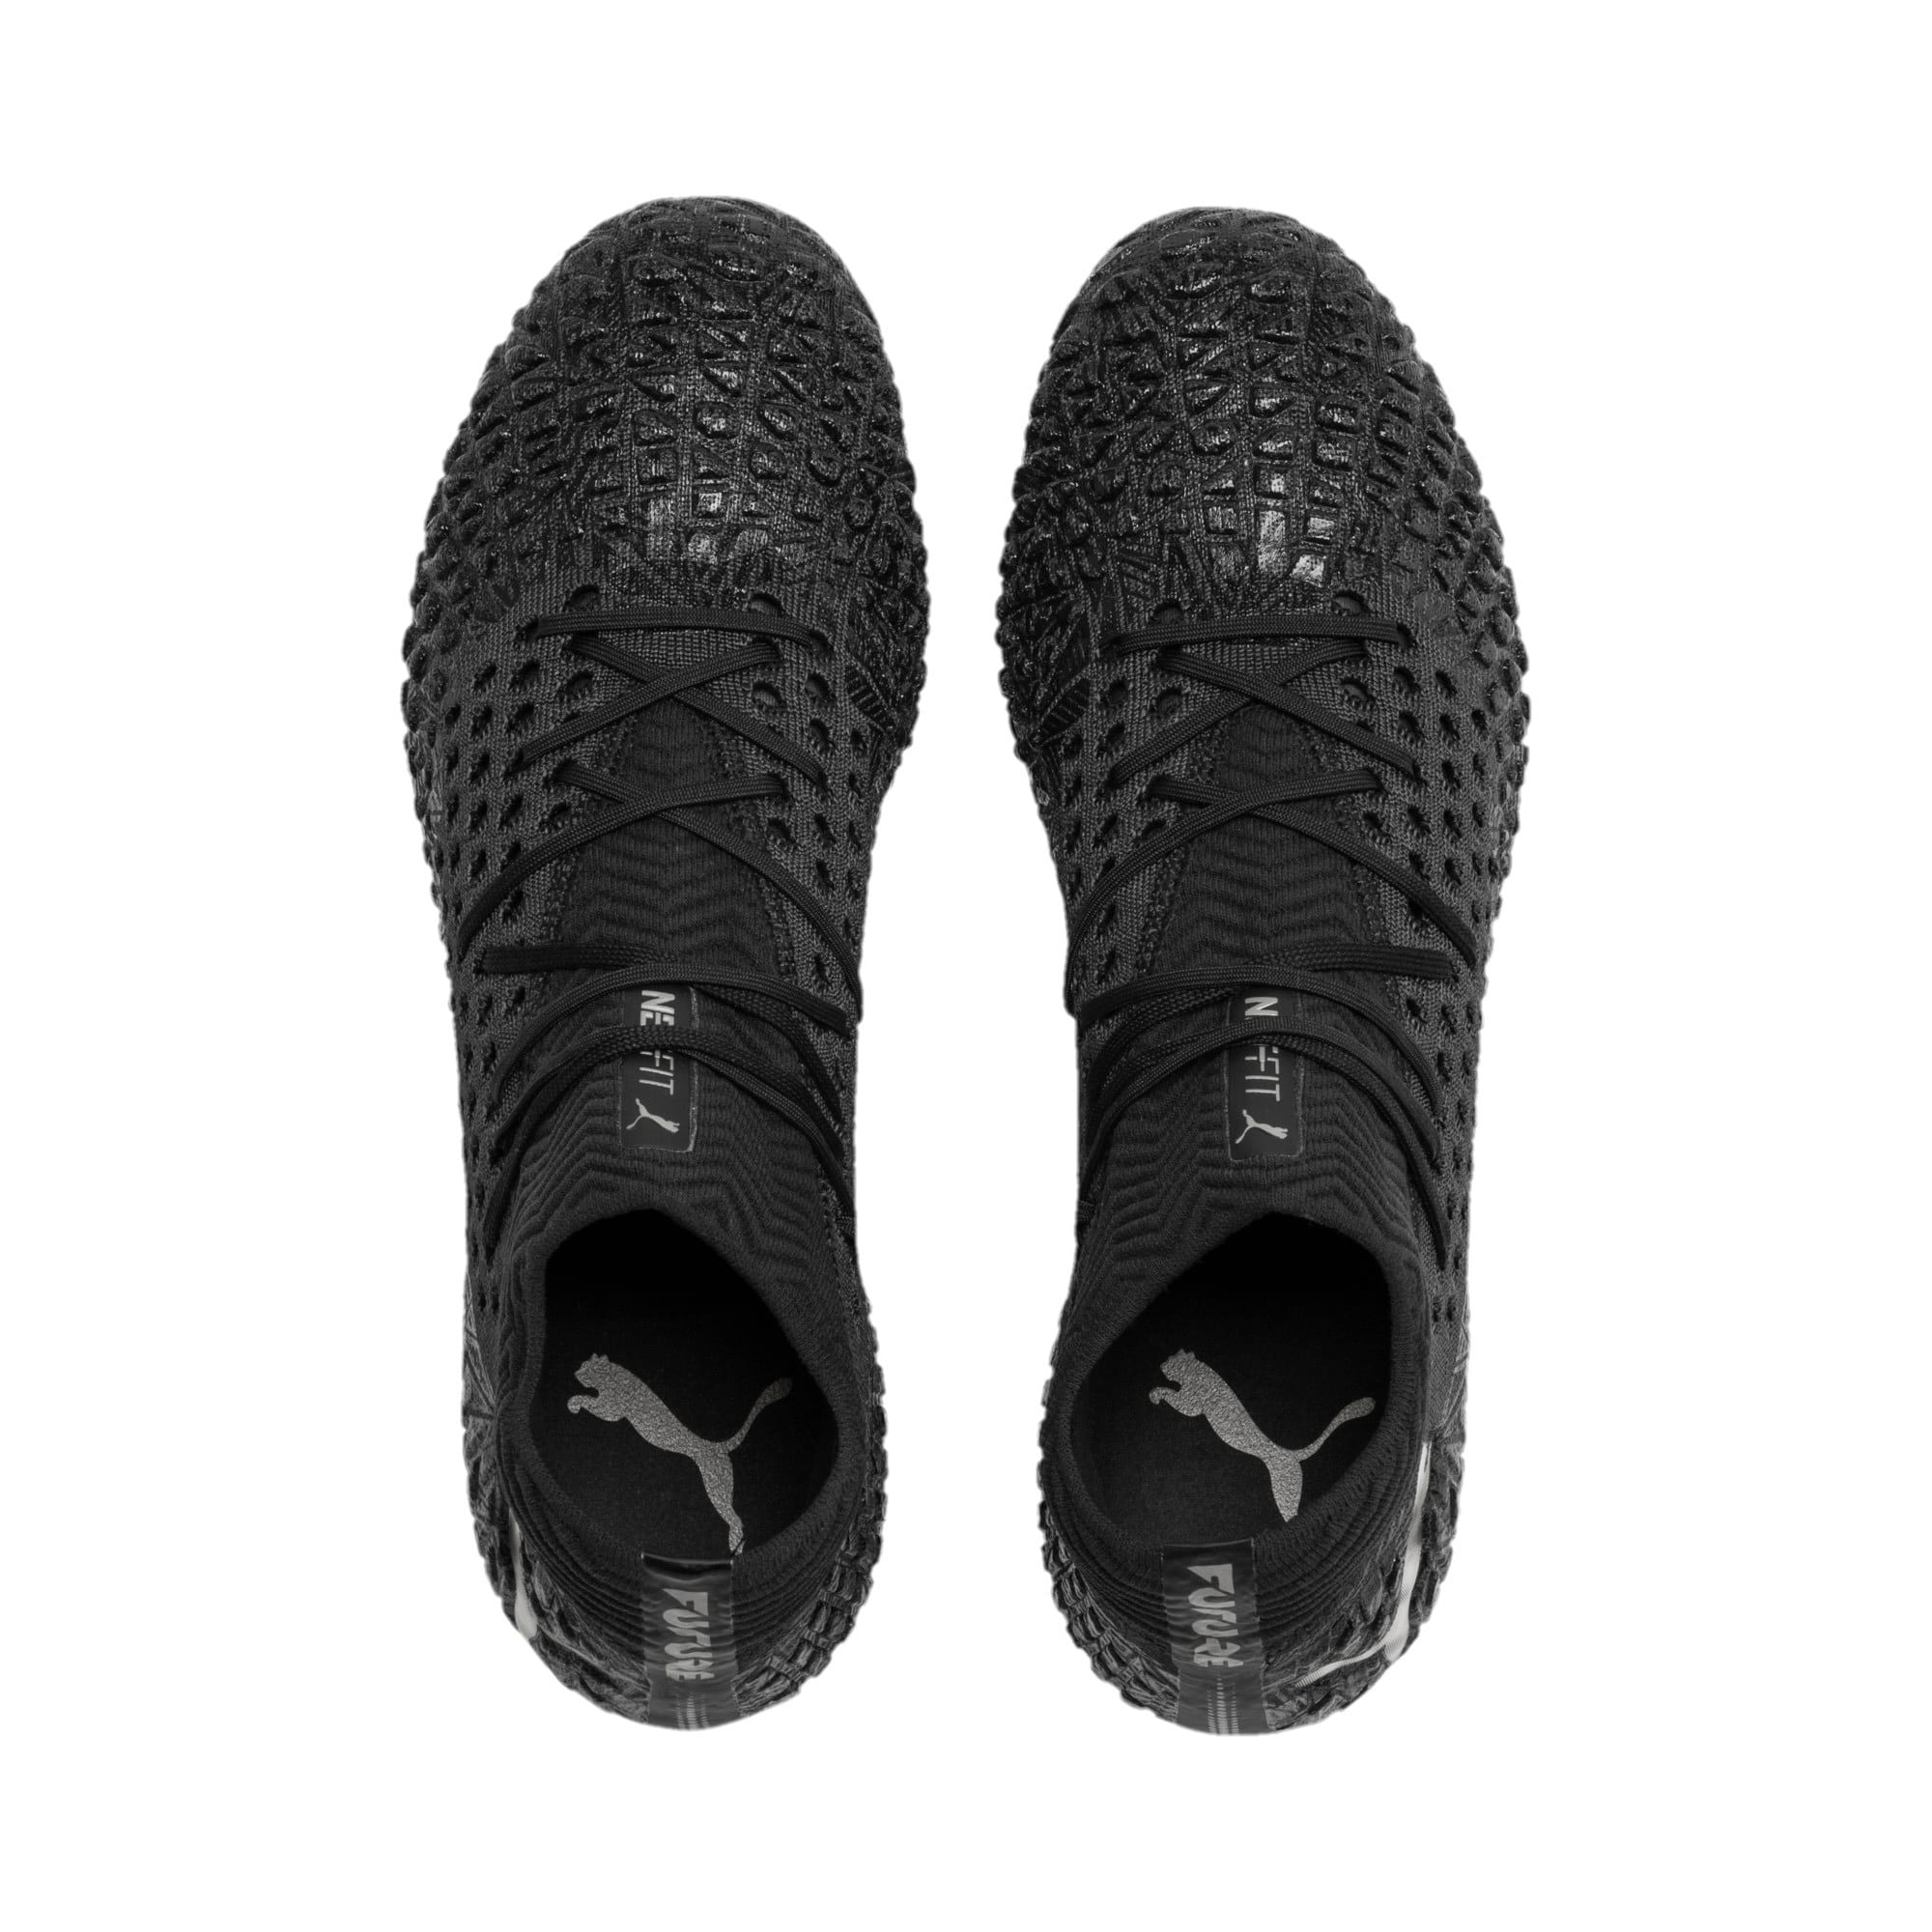 Thumbnail 7 of FUTURE 4.1 NETFIT FG/AG Men's Football Boots, Black-Black-Puma Aged Silver, medium